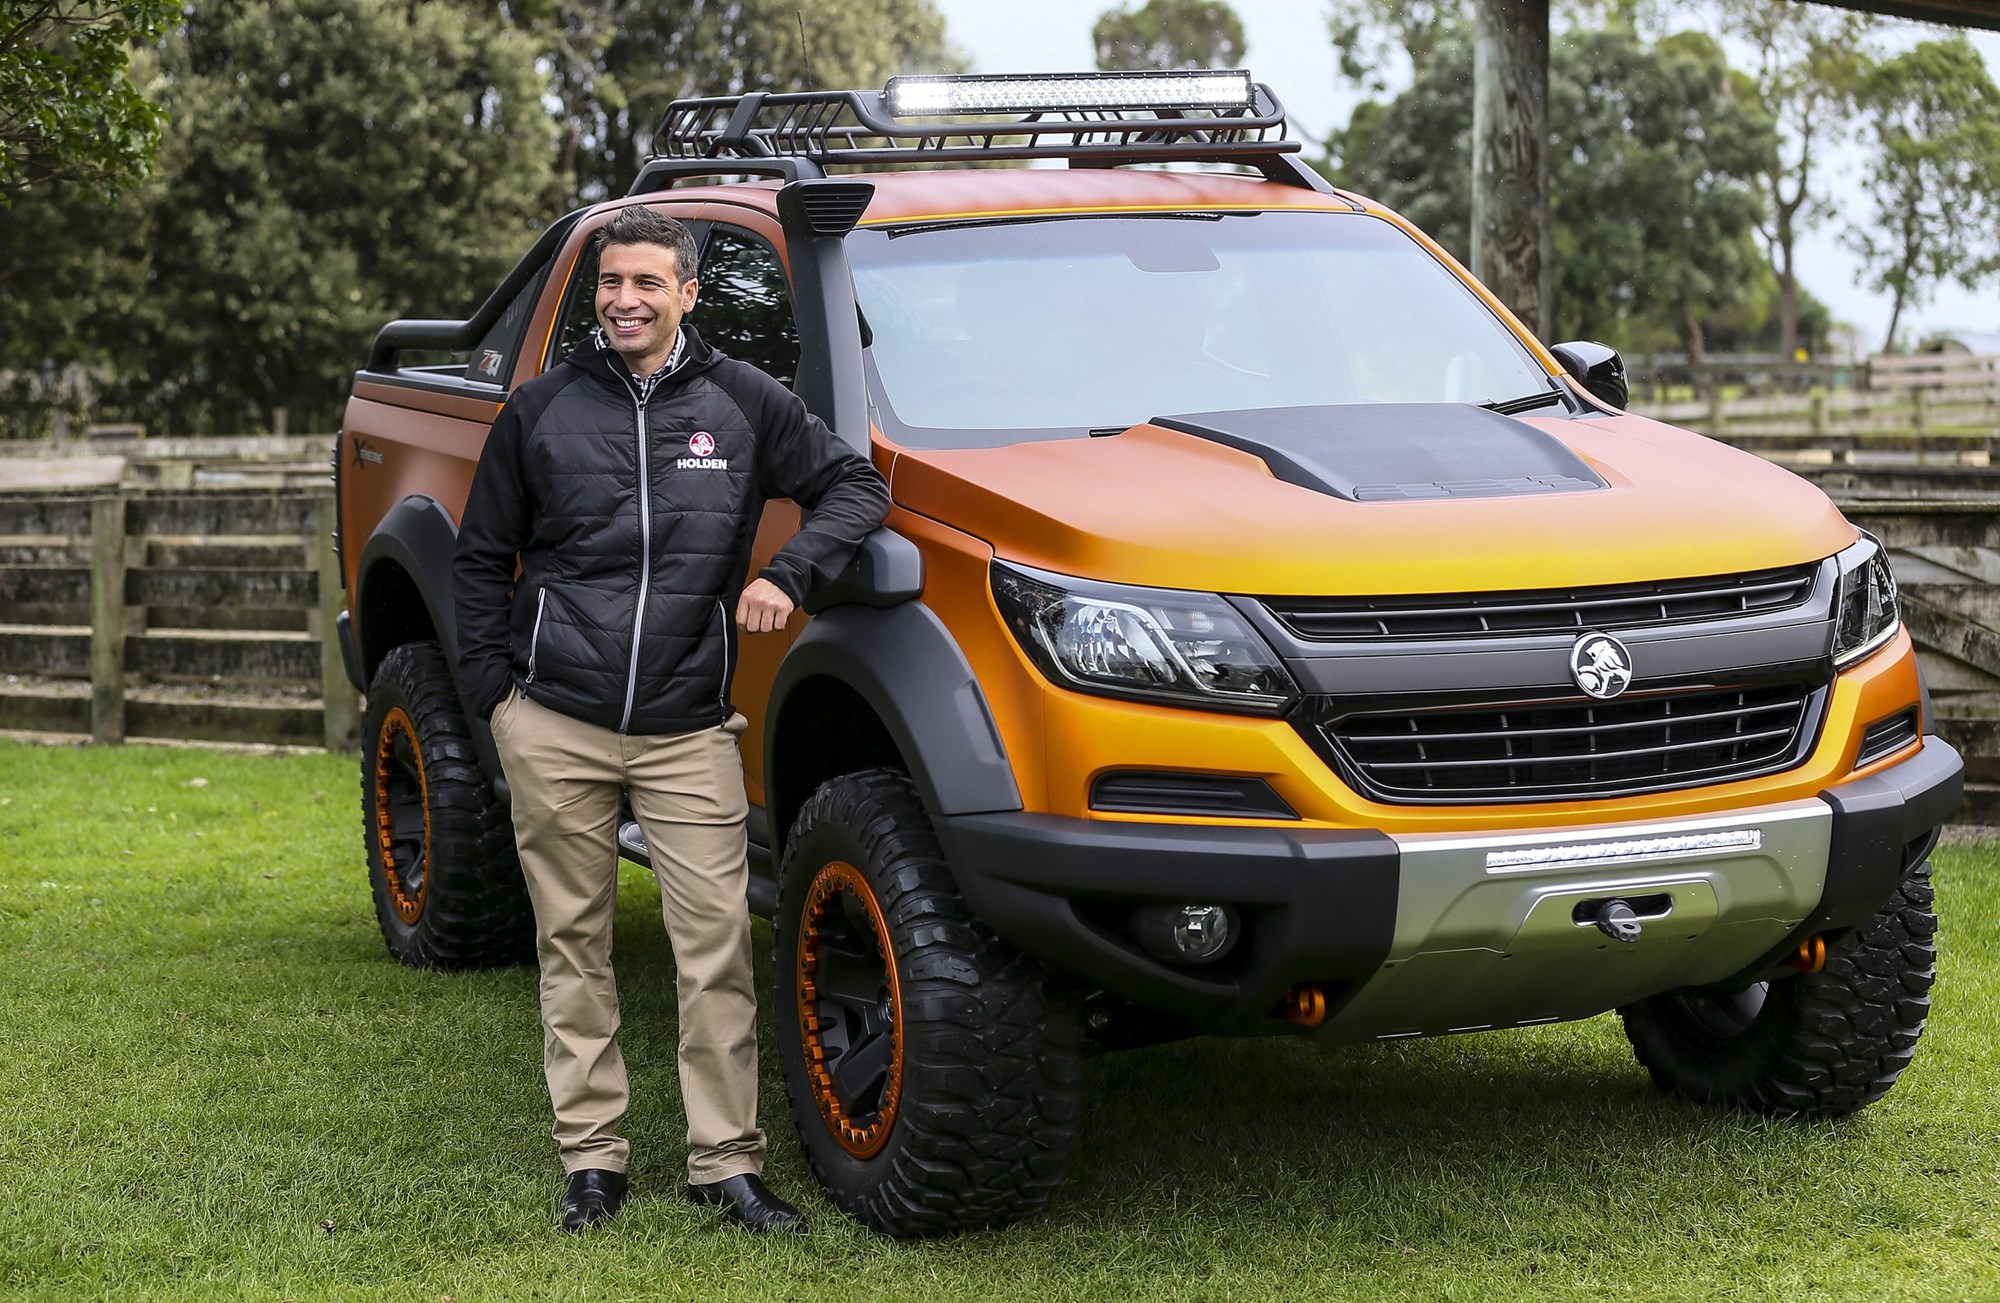 Ute Beauty Check Out Holdens Million Colorado News Driven - Cool cars auckland